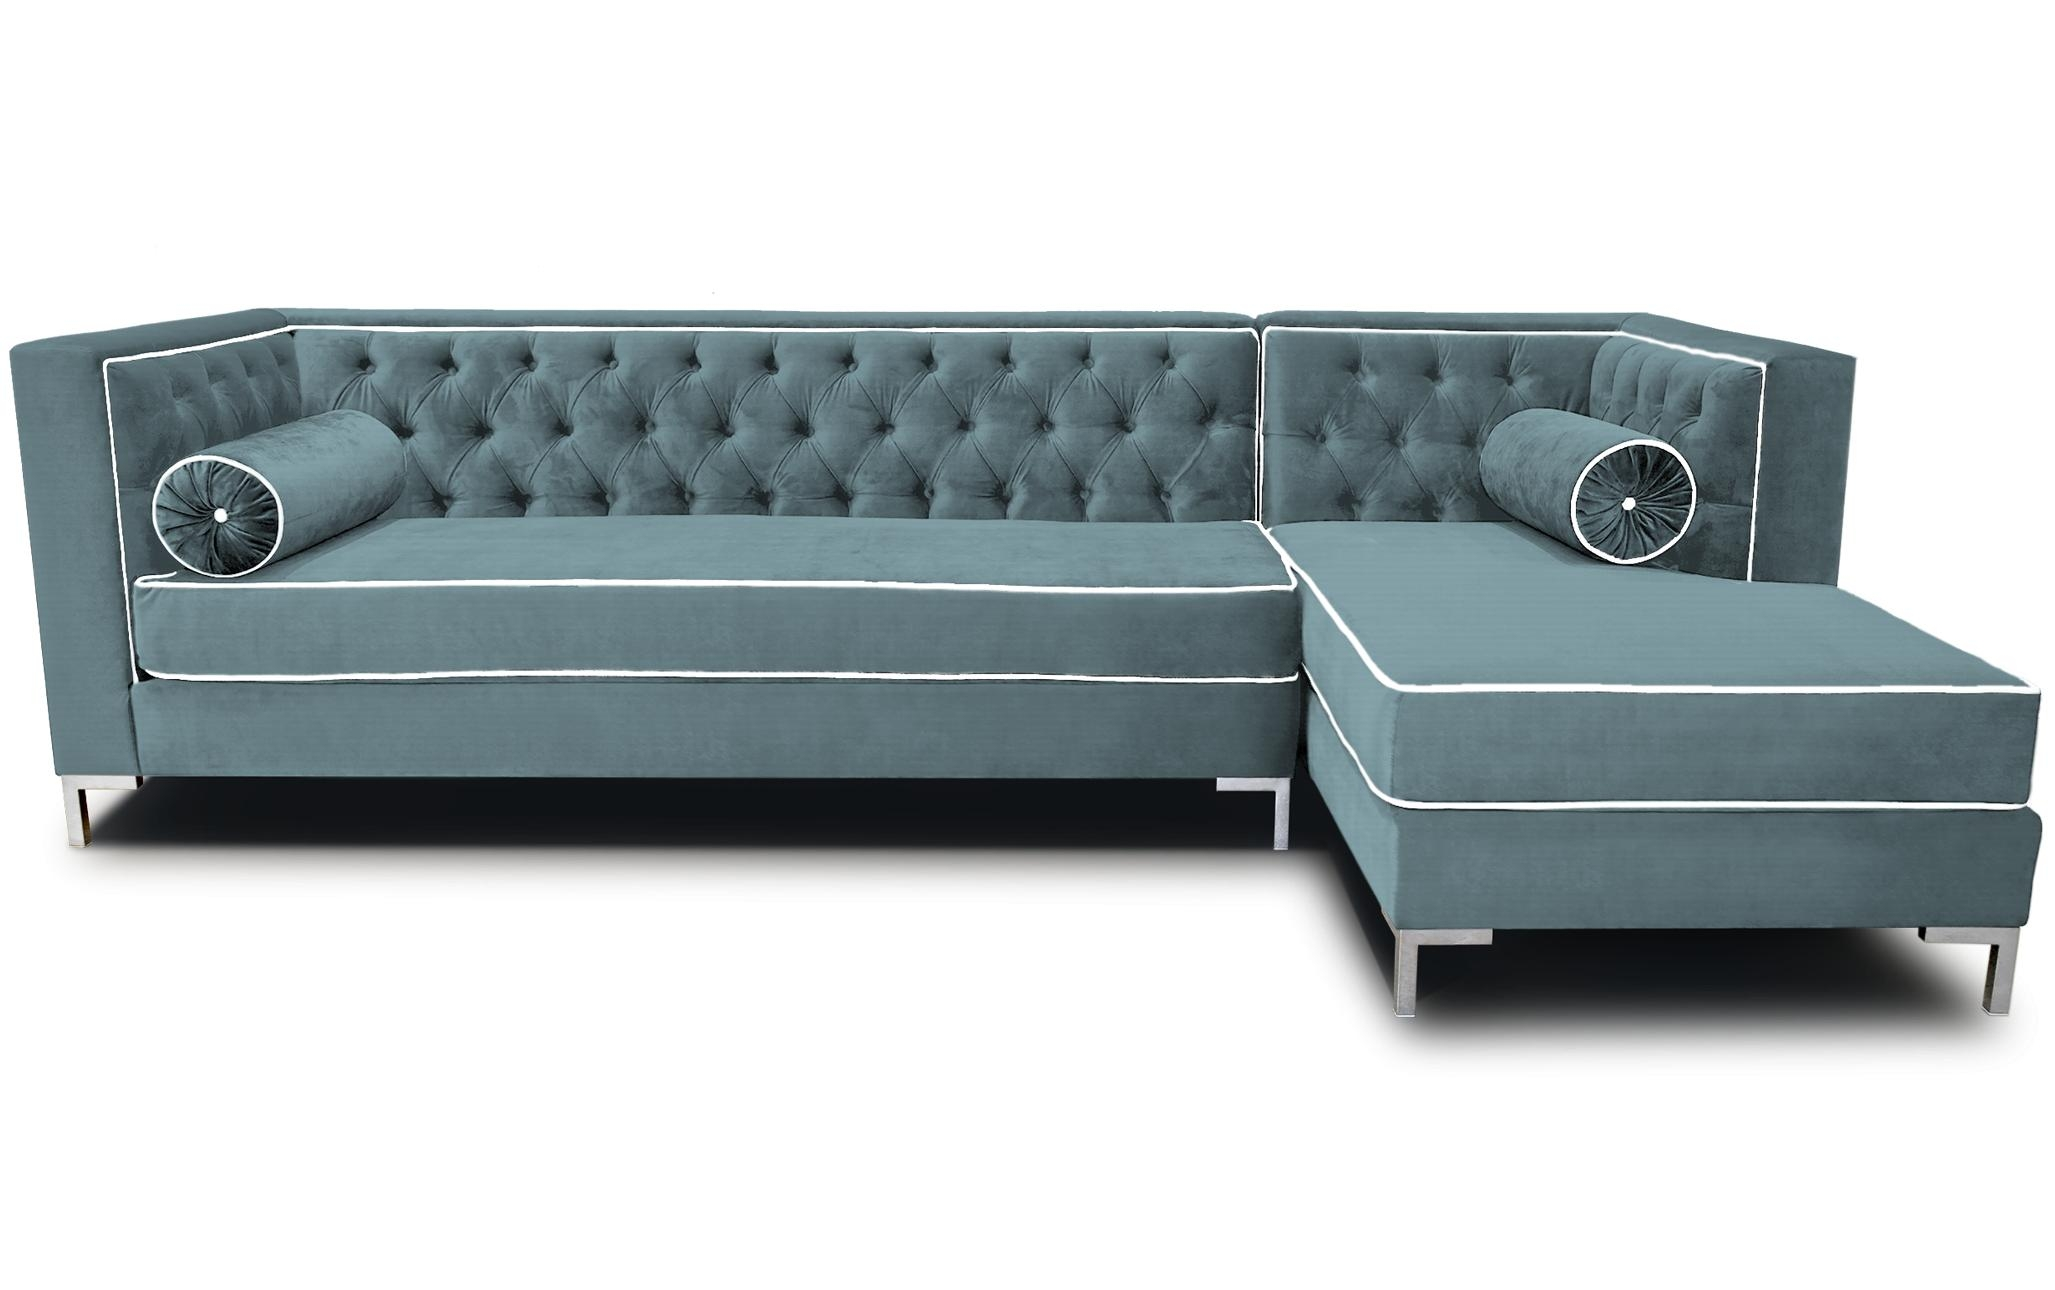 Sofas Center : 41 Stunning Tufted Sleeper Sofa Photo Design Tufted With Tufted Sleeper Sofas (Image 13 of 20)